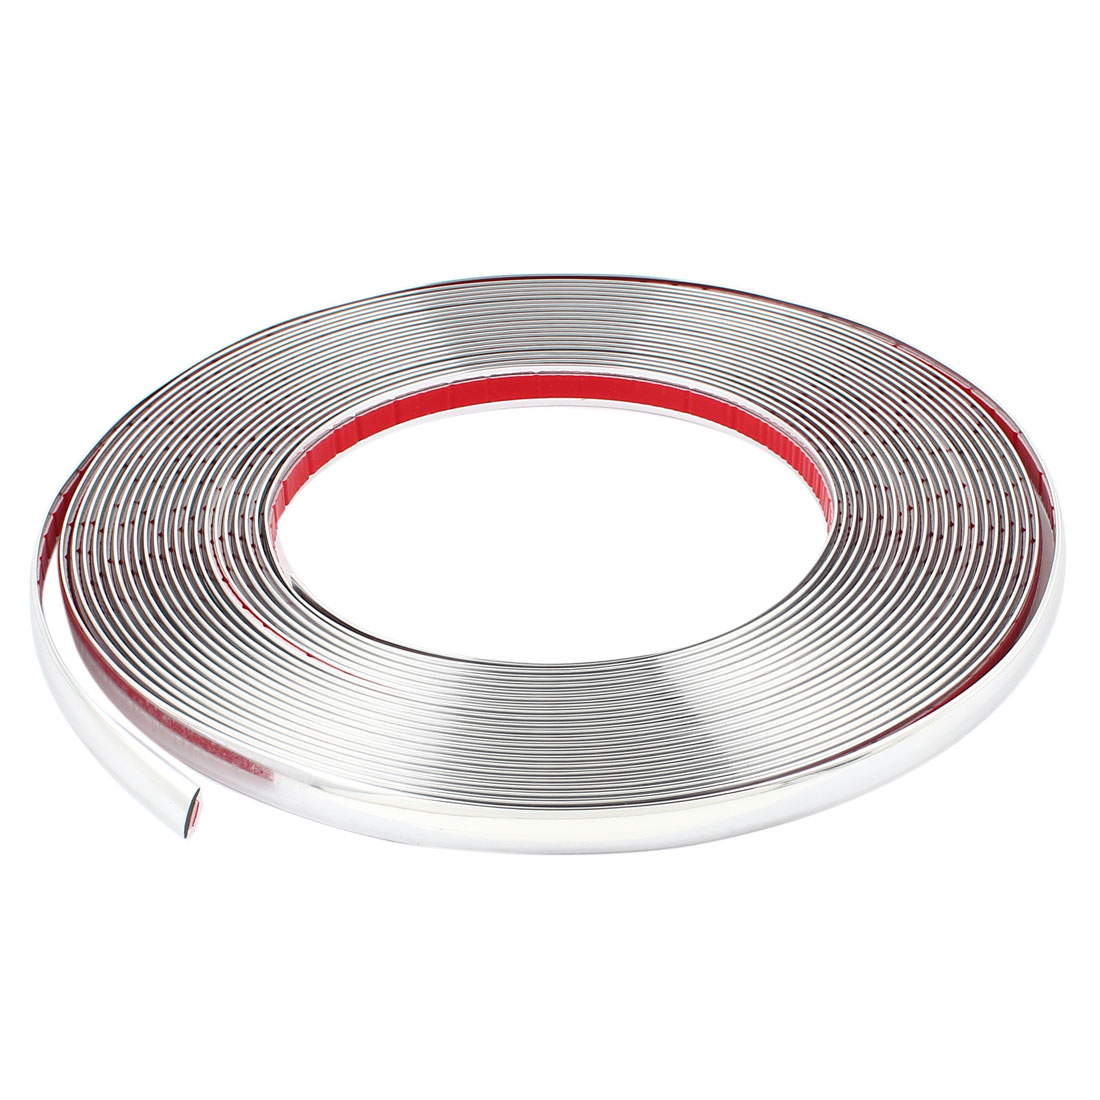 Silver Tone Chrome Coated Adhesive Car Window Moulding Trim Strip Line 19M x 15mm